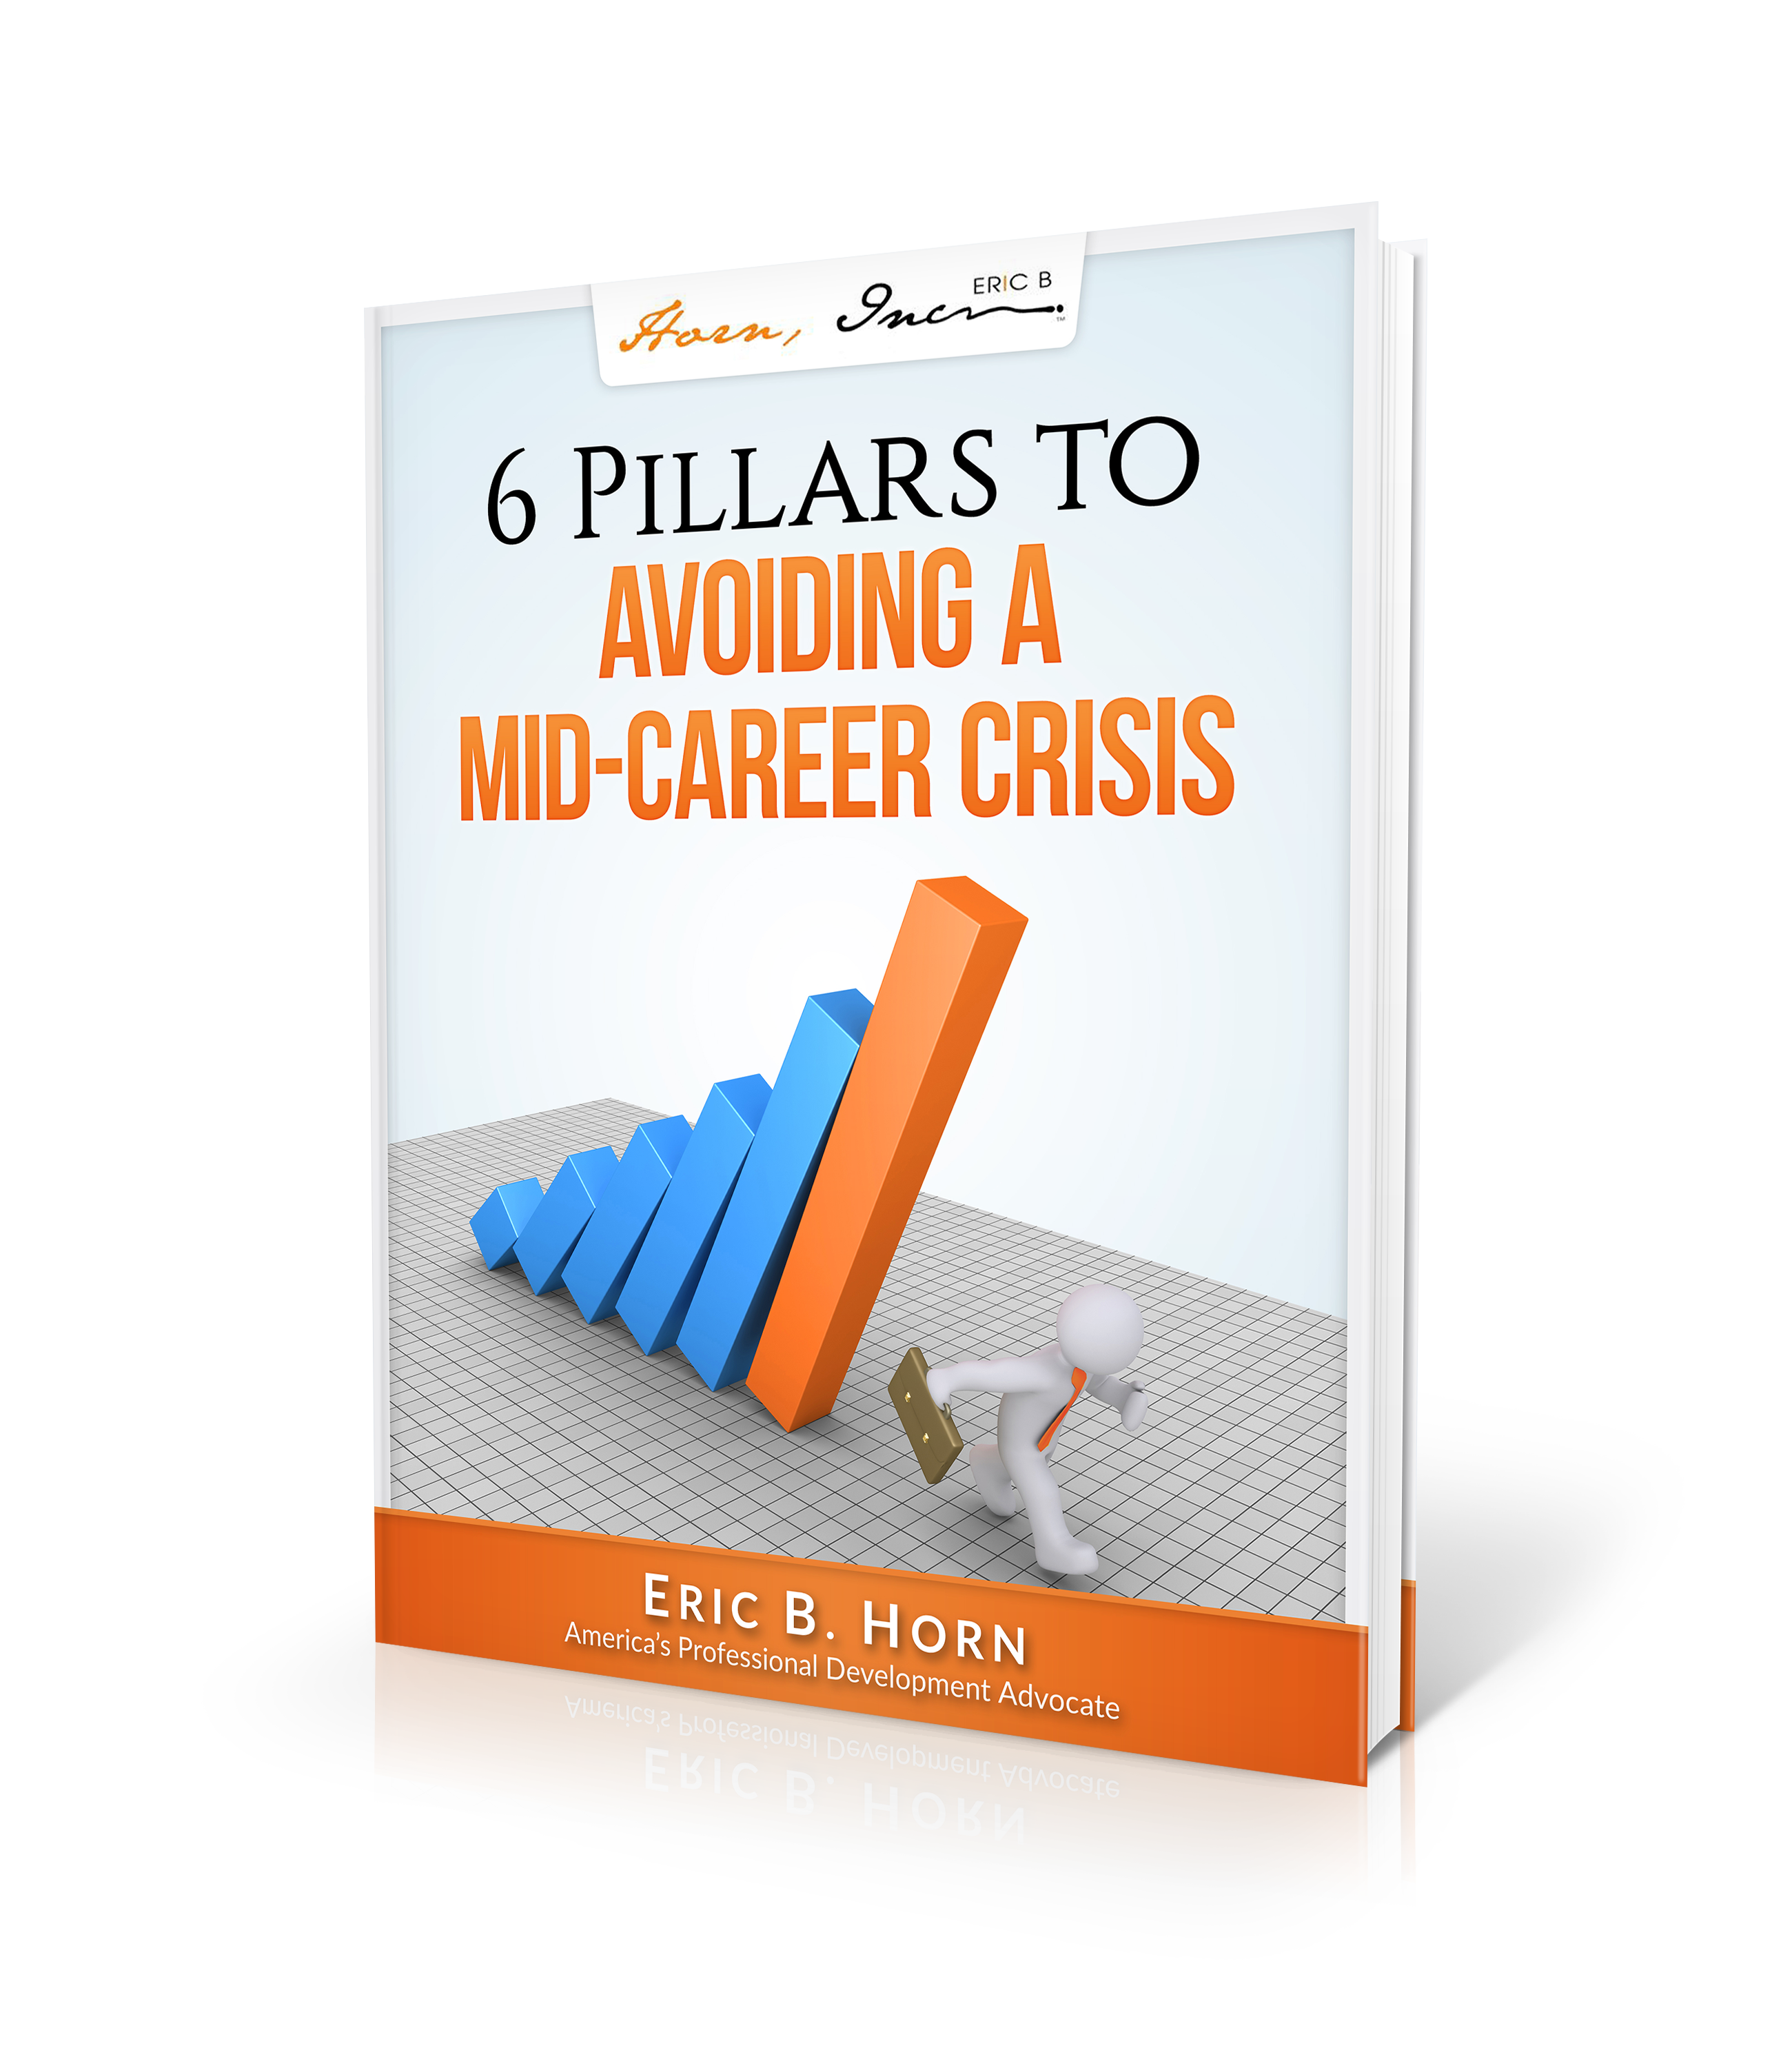 6 Pillars to Avoiding a Mid-Career Crisis-EricBHorn